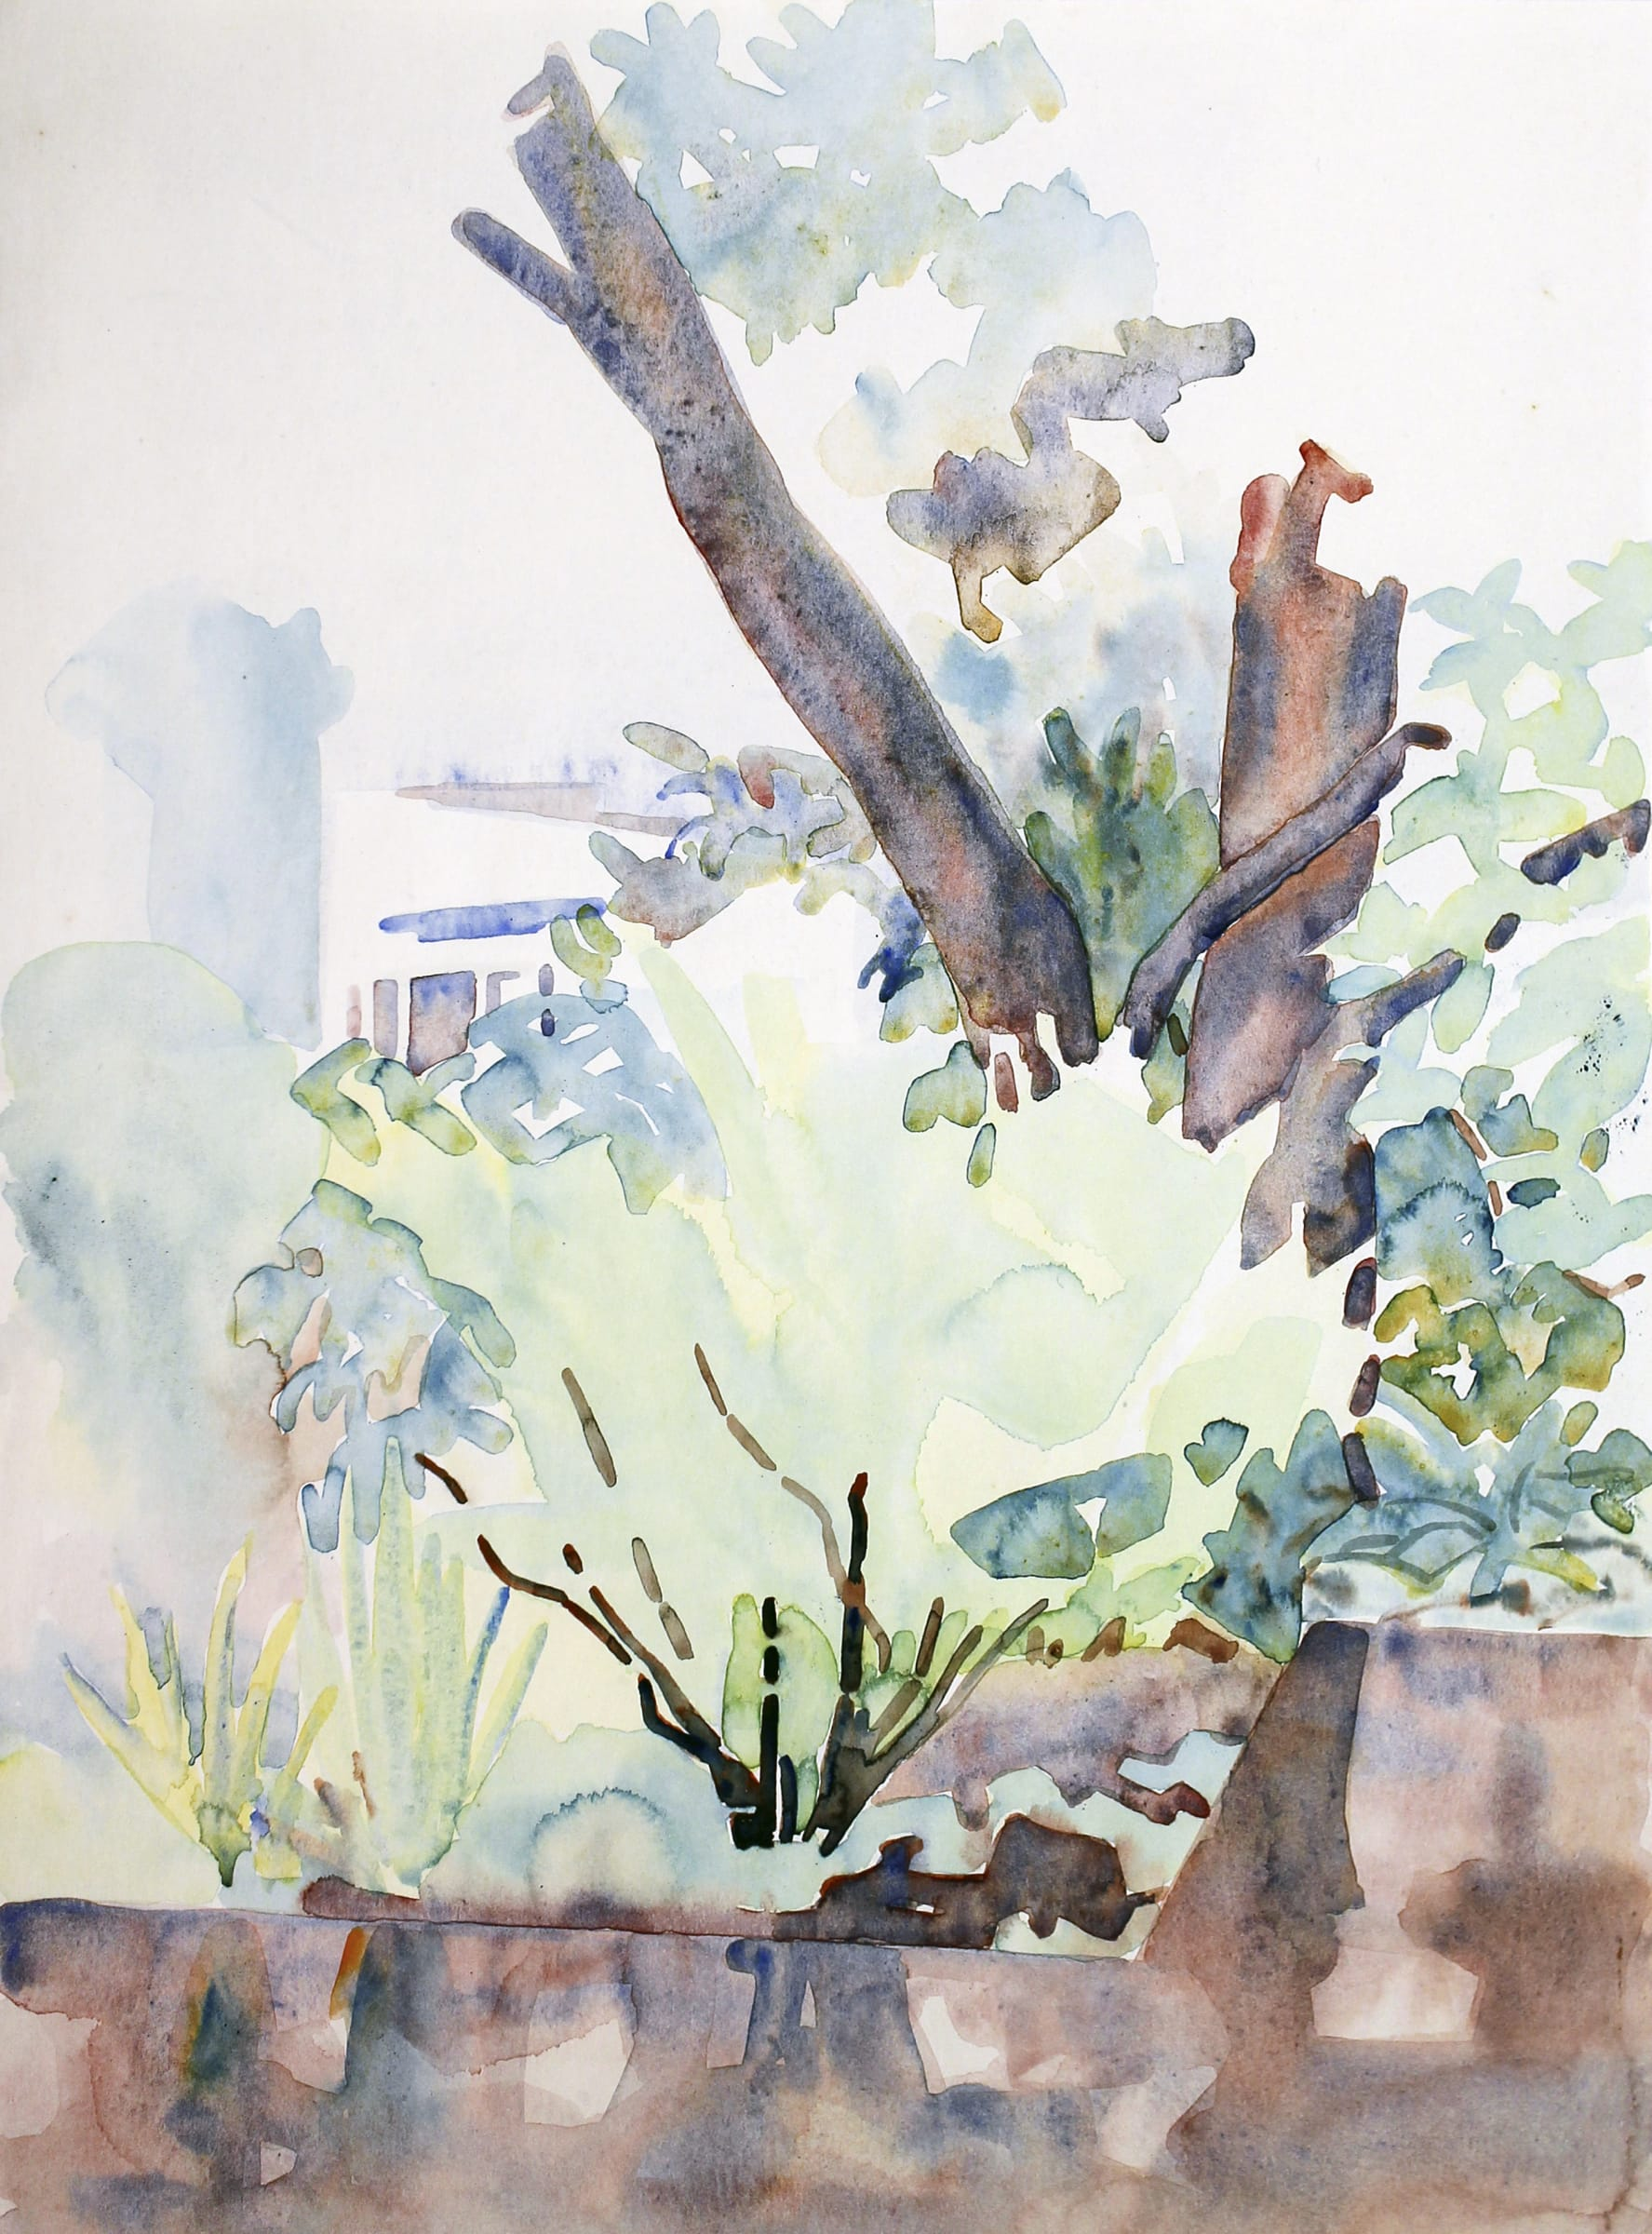 """<span class=""""link fancybox-details-link""""><a href=""""/artists/70-rita-angus/works/6393-rita-angus-tree-study-thorndon-n.d./"""">View Detail Page</a></span><div class=""""artist""""><strong>Rita Angus</strong></div> <div class=""""title""""><em>Tree Study, Thorndon</em>, n.d.</div> <div class=""""medium"""">Watercolour on paper</div> <div class=""""dimensions"""">14.9 x 11 in<br />37.9 x 27.9 cm</div>"""